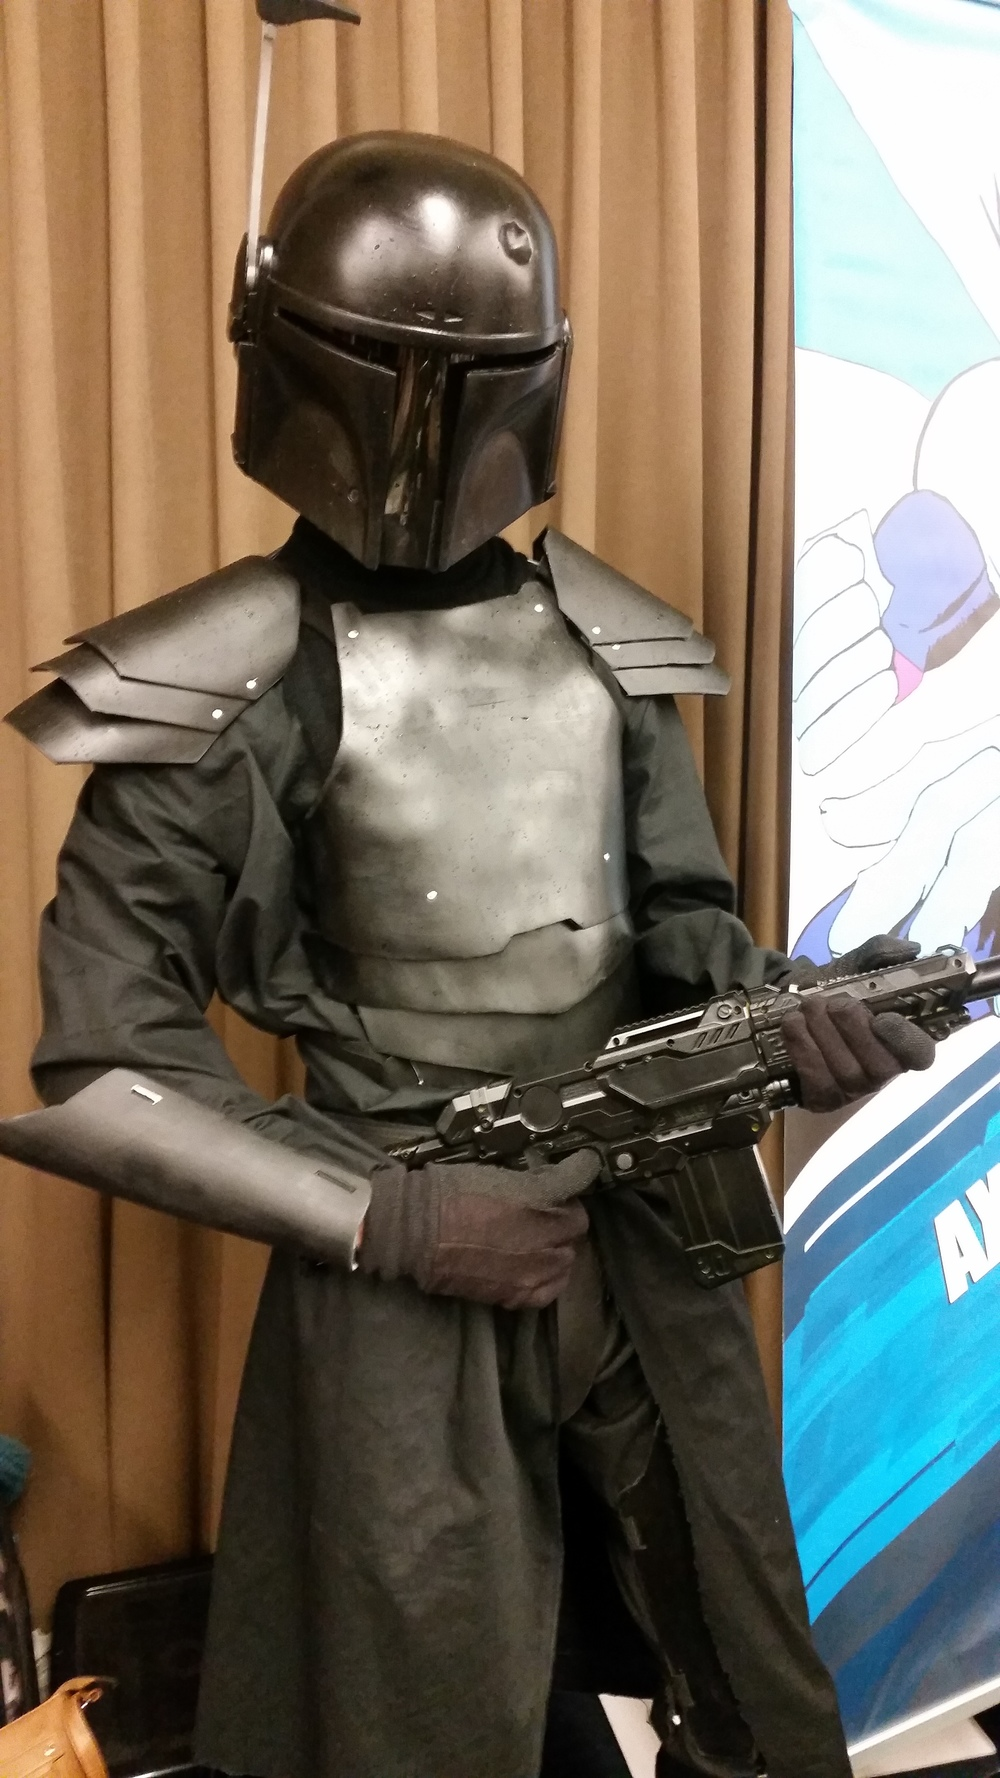 Brenden in the mandalorian armor he made himself.